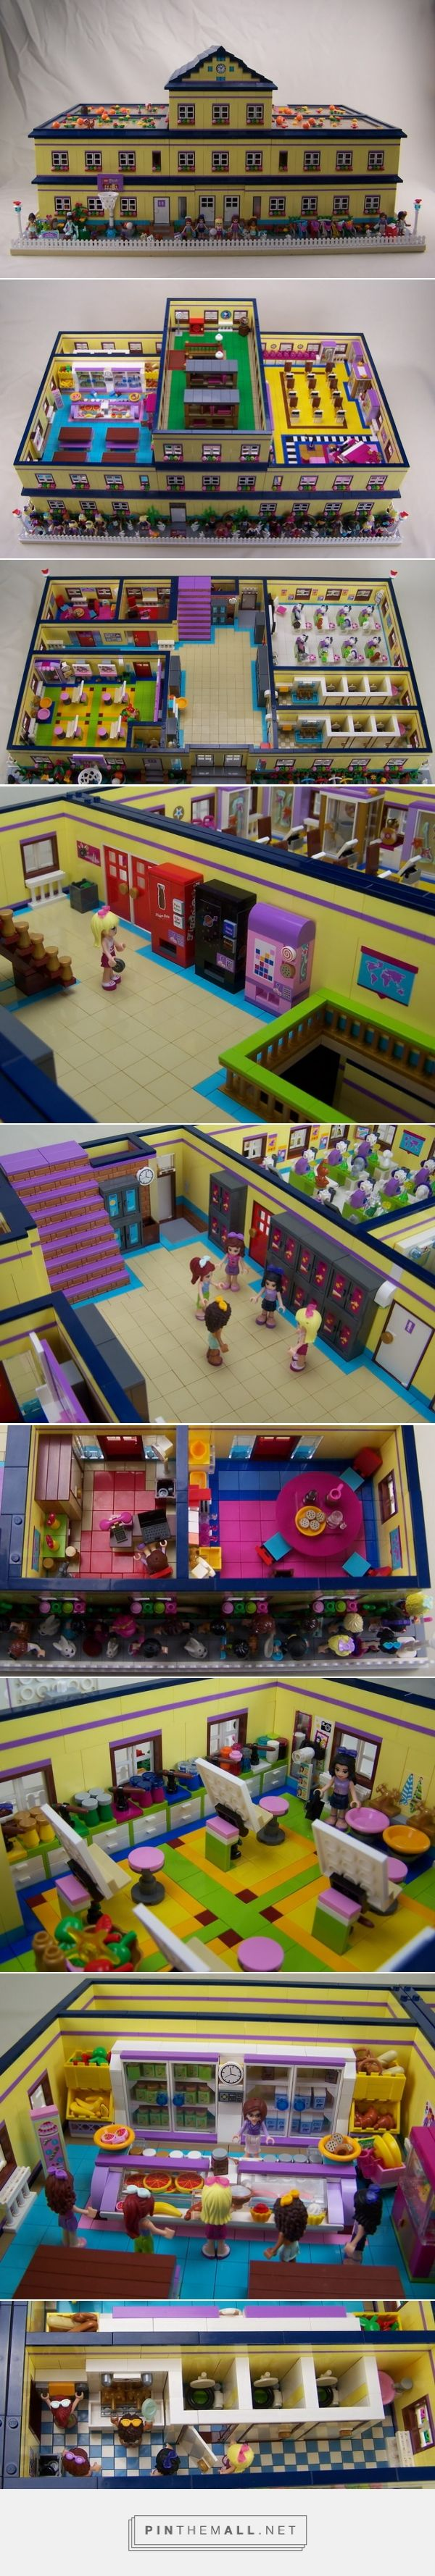 ( MOC ) Lego Friends Heartlake High - LEGO Town - Eurobricks Forums - created via https://pinthemall.net